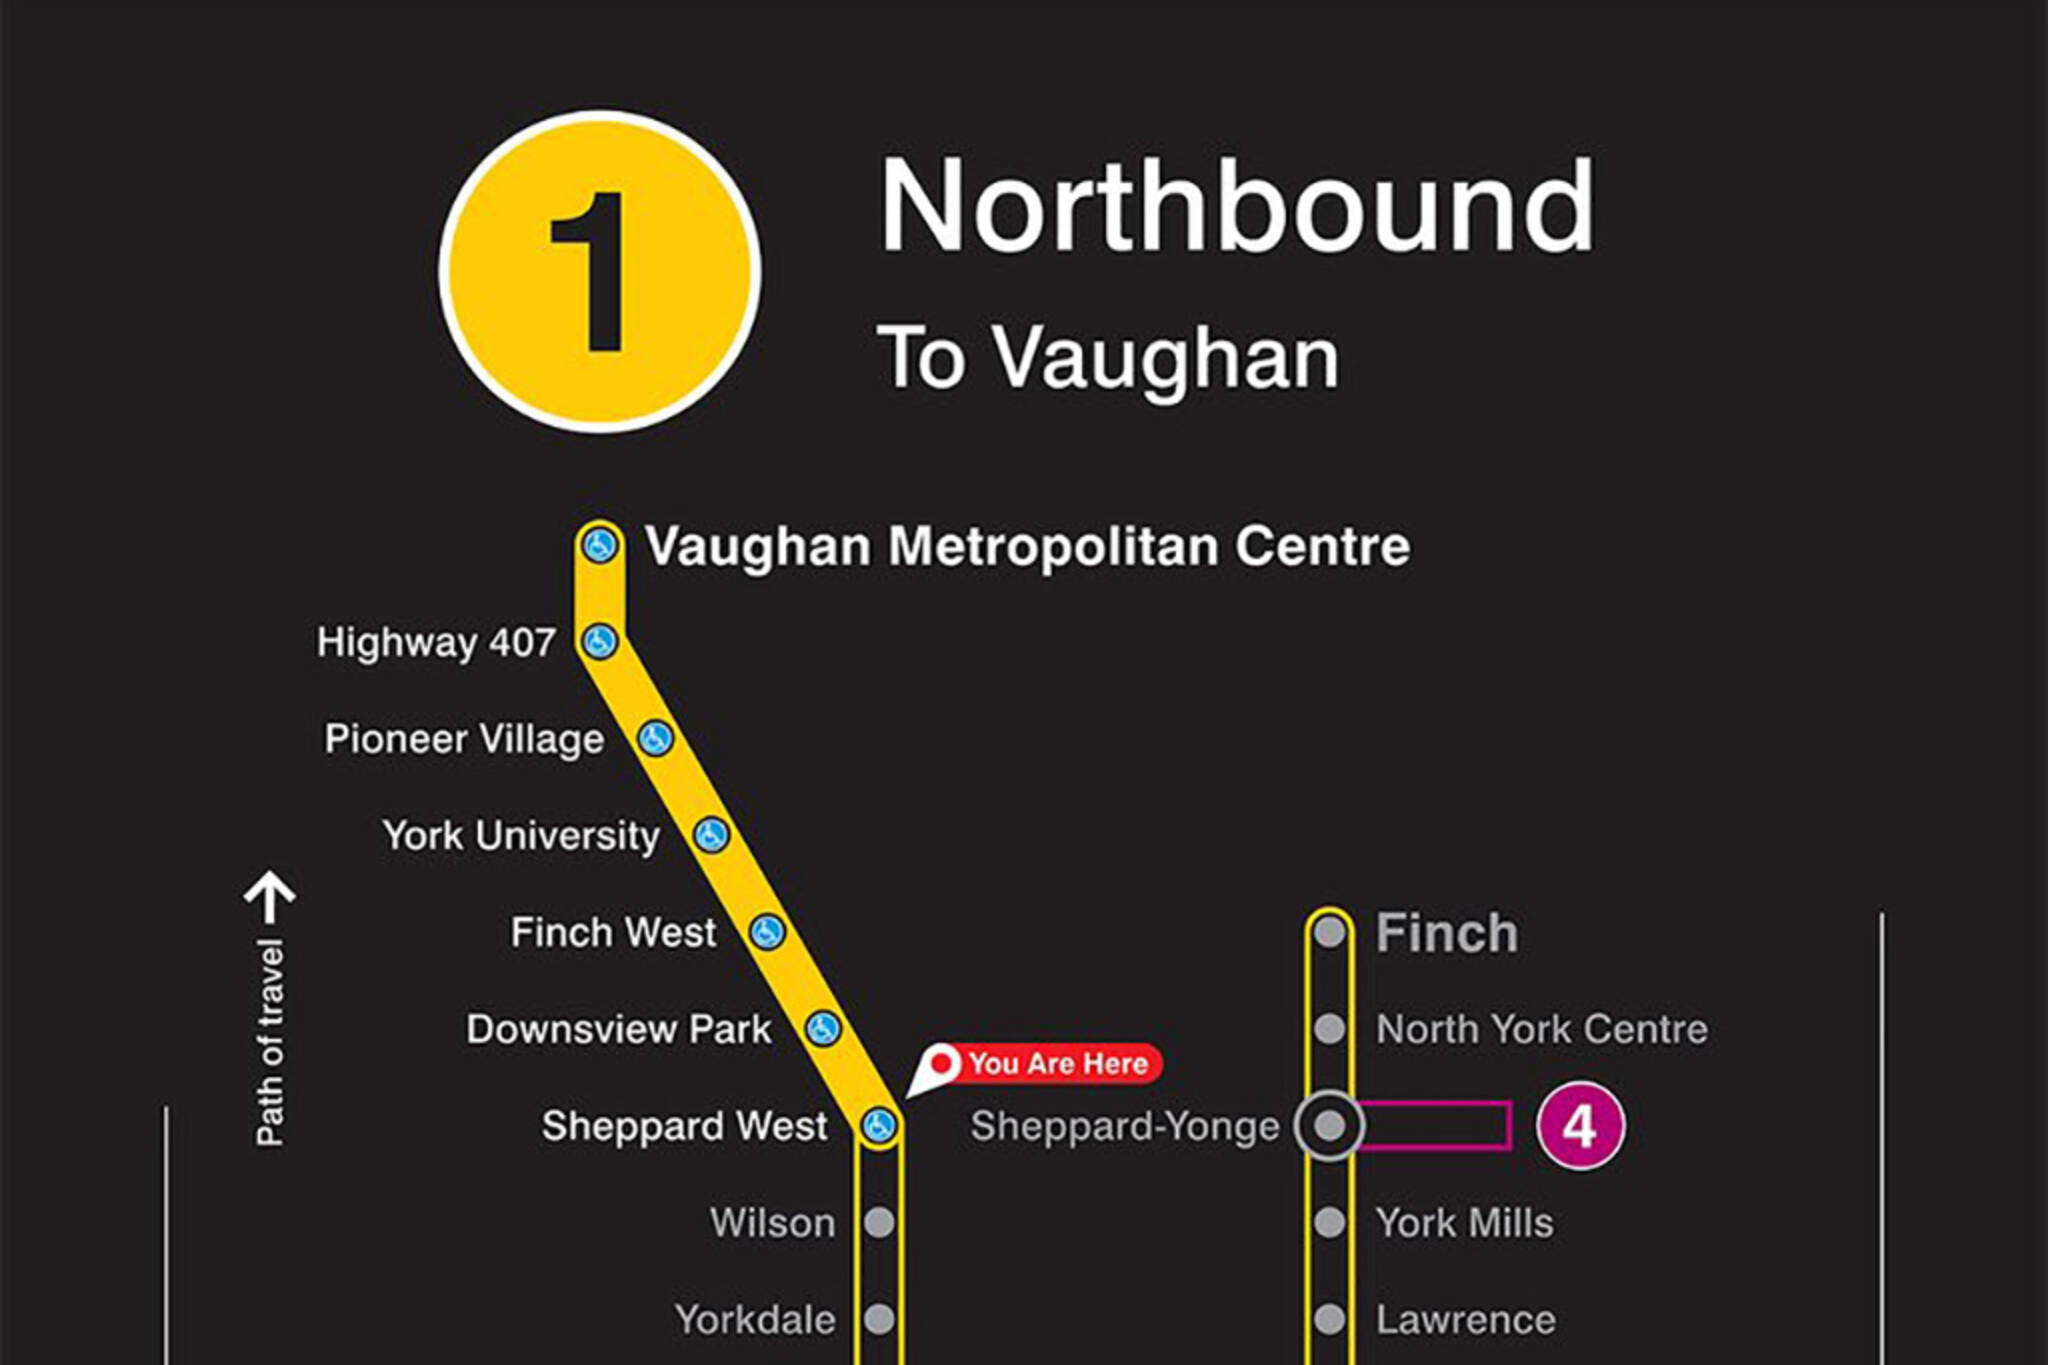 New York Subway Map Future.This Is What The New Ttc Subway Map Looks Like